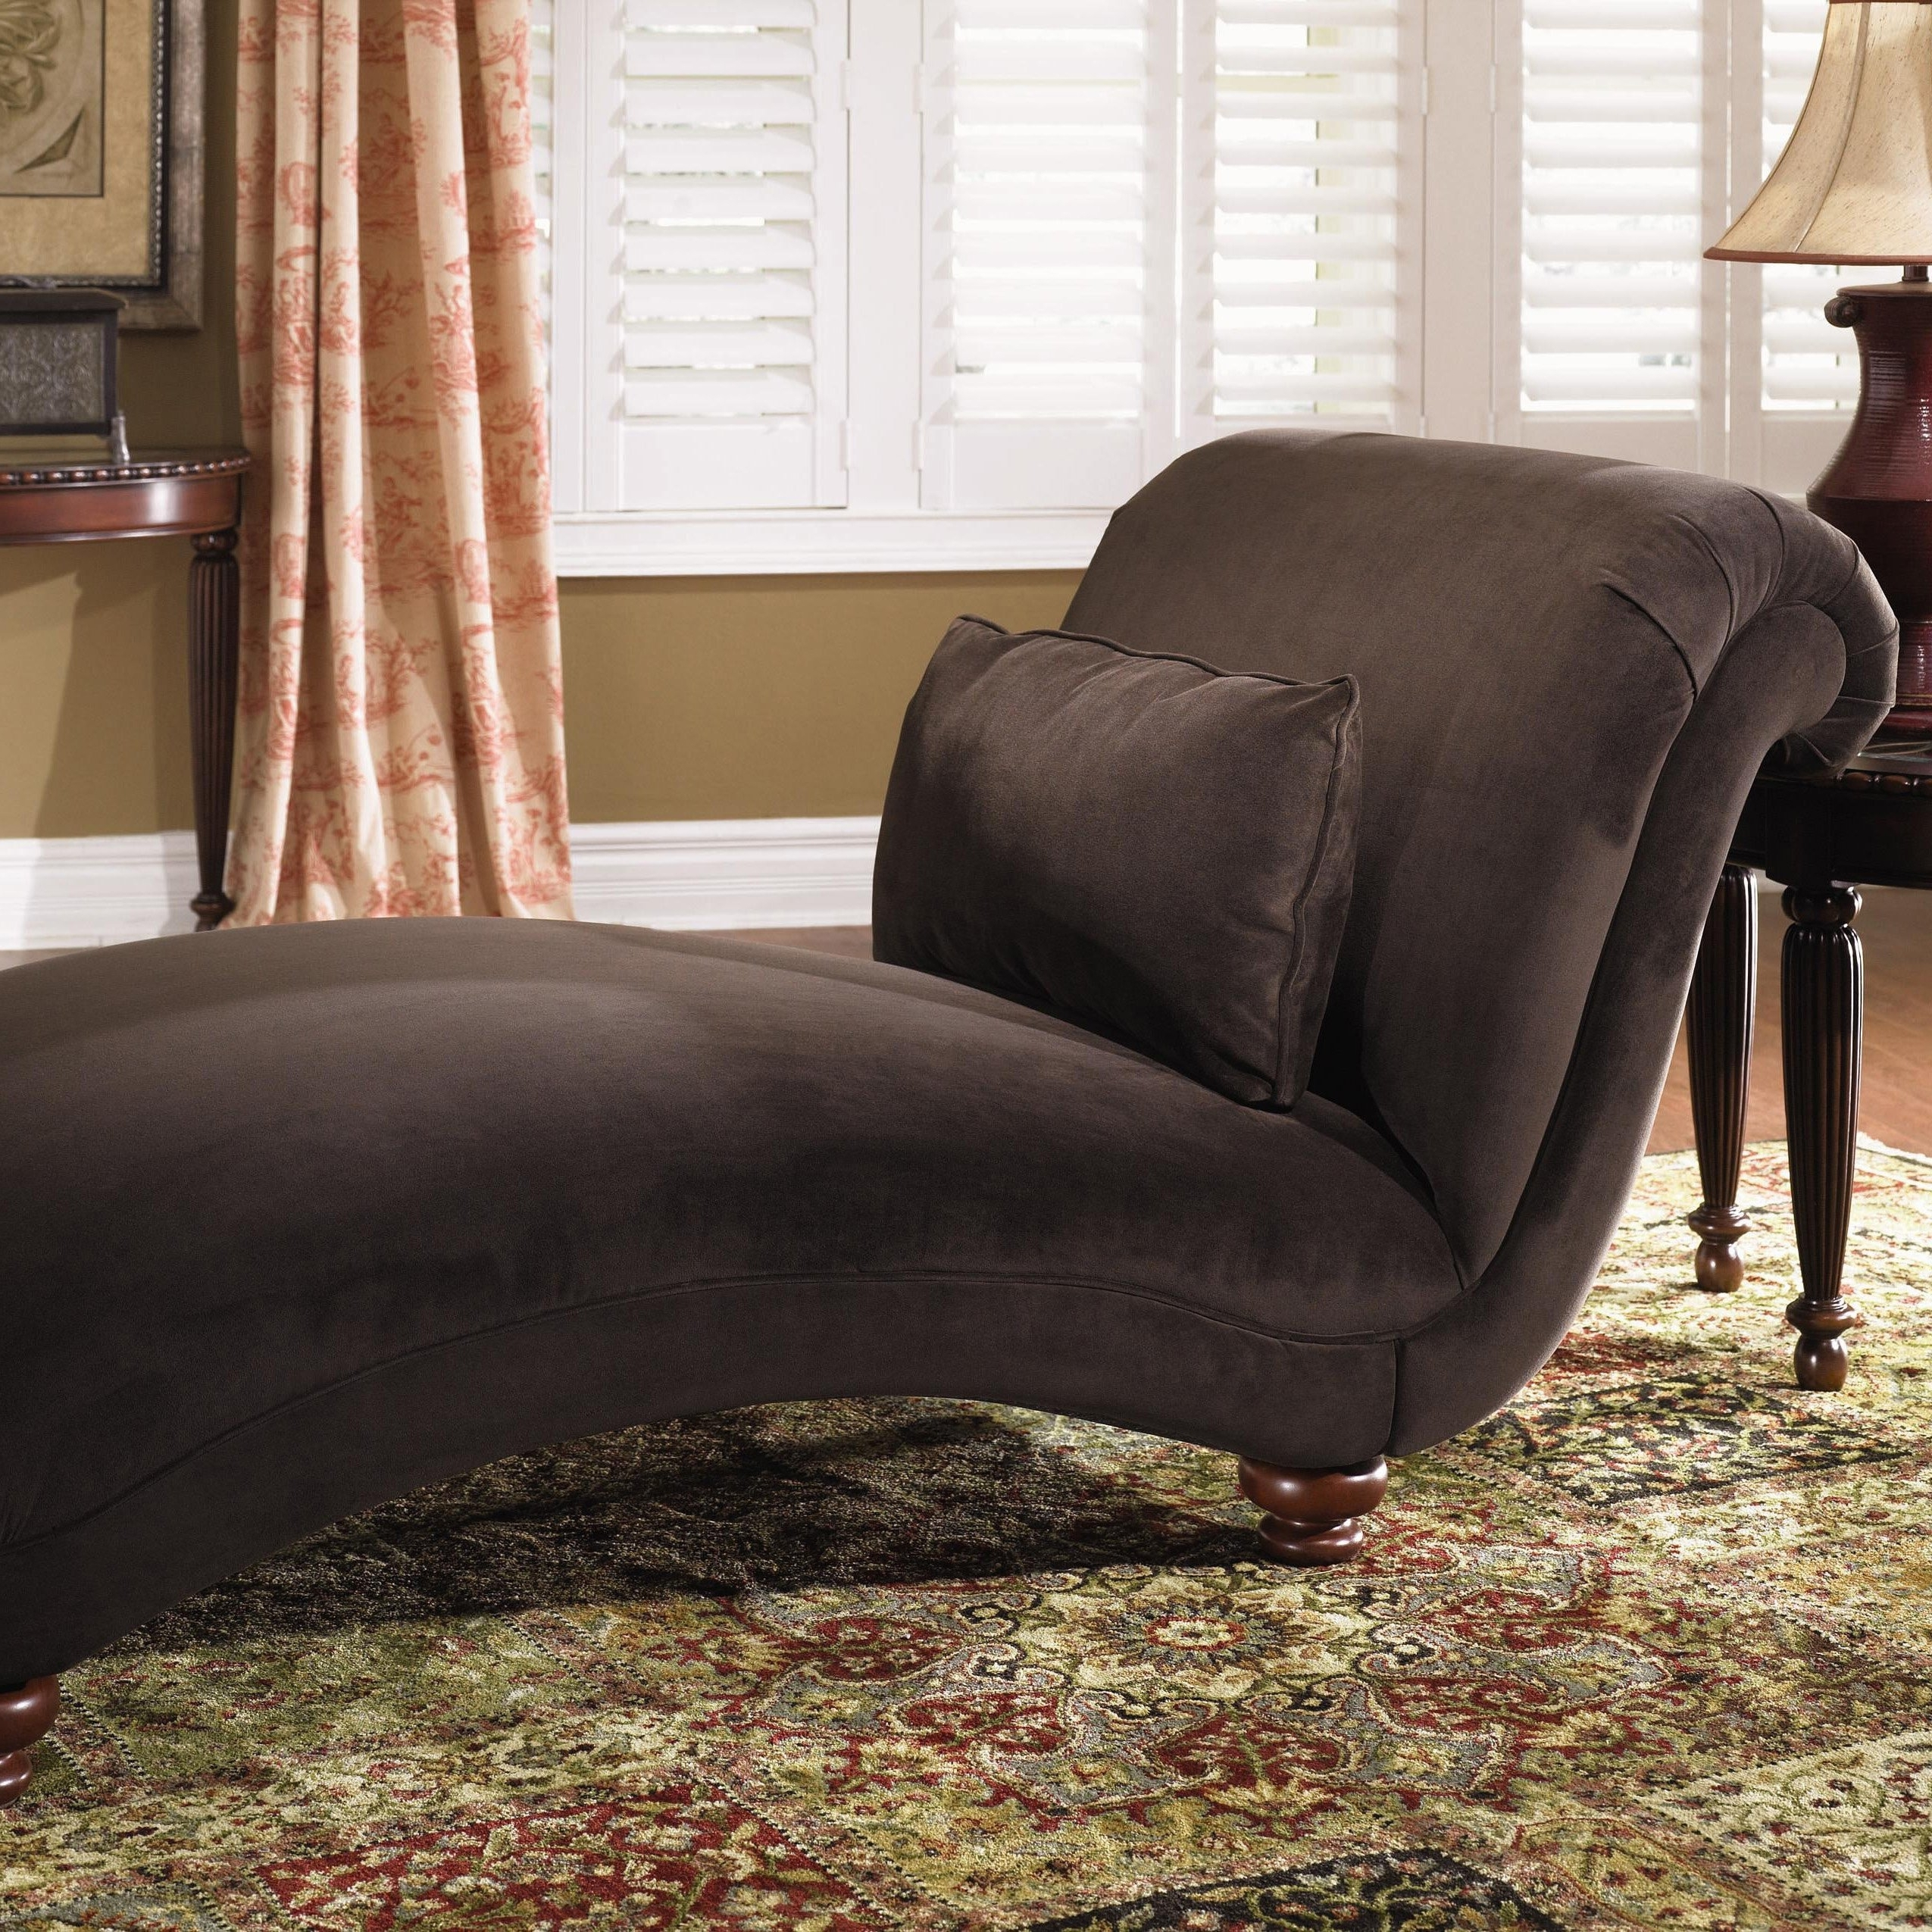 Chaise Lounges For Bedrooms For Well Known Bedroom Ideas : Amazing Cool Tufted Chaise Lounge Chair With (View 11 of 15)